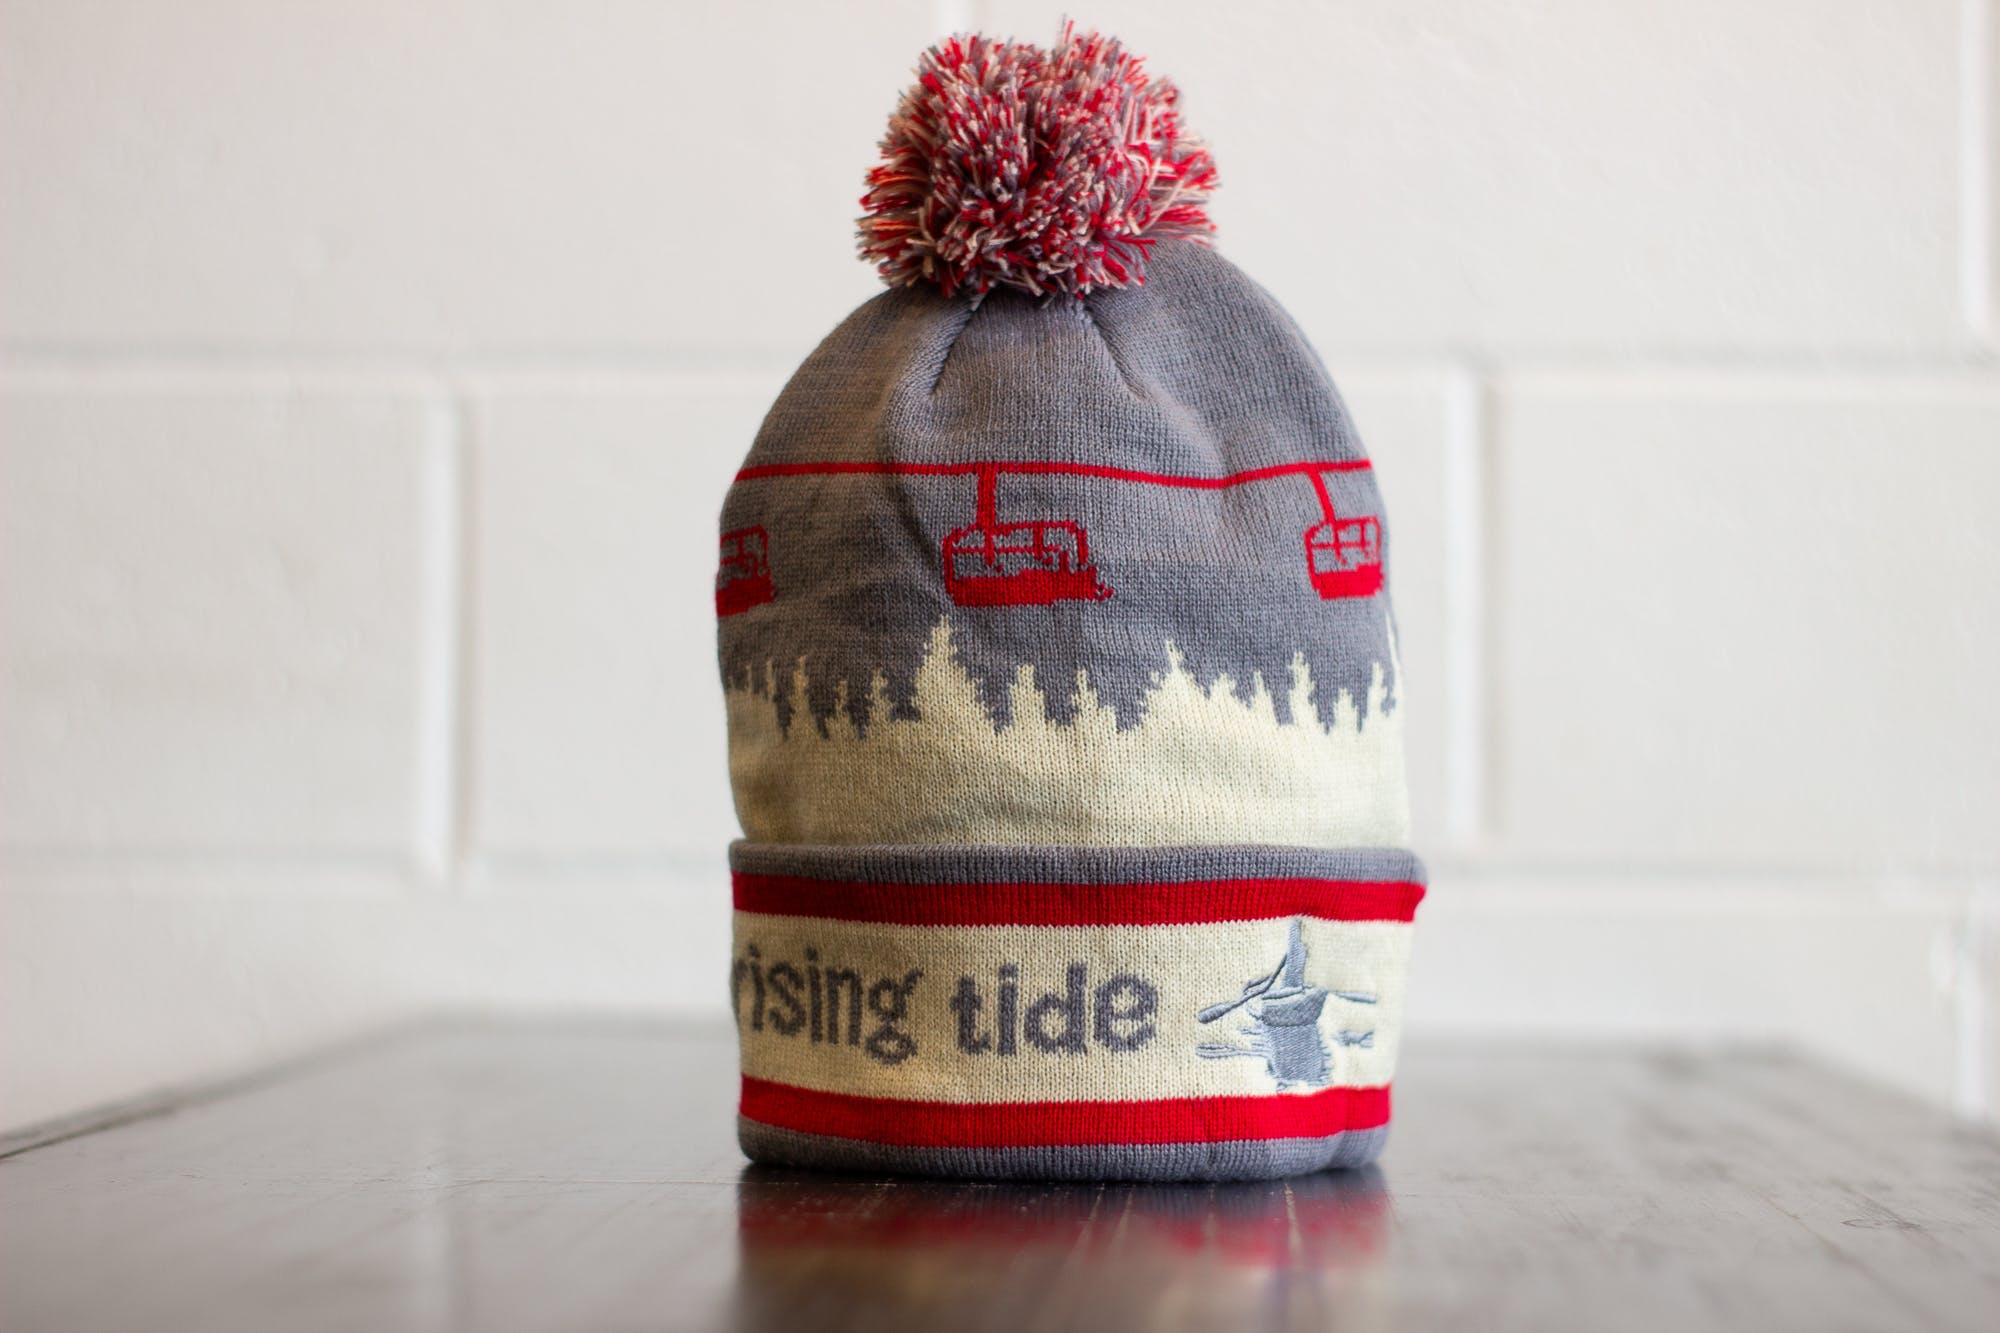 Rising Tide Brewery Winter Hat with Pom